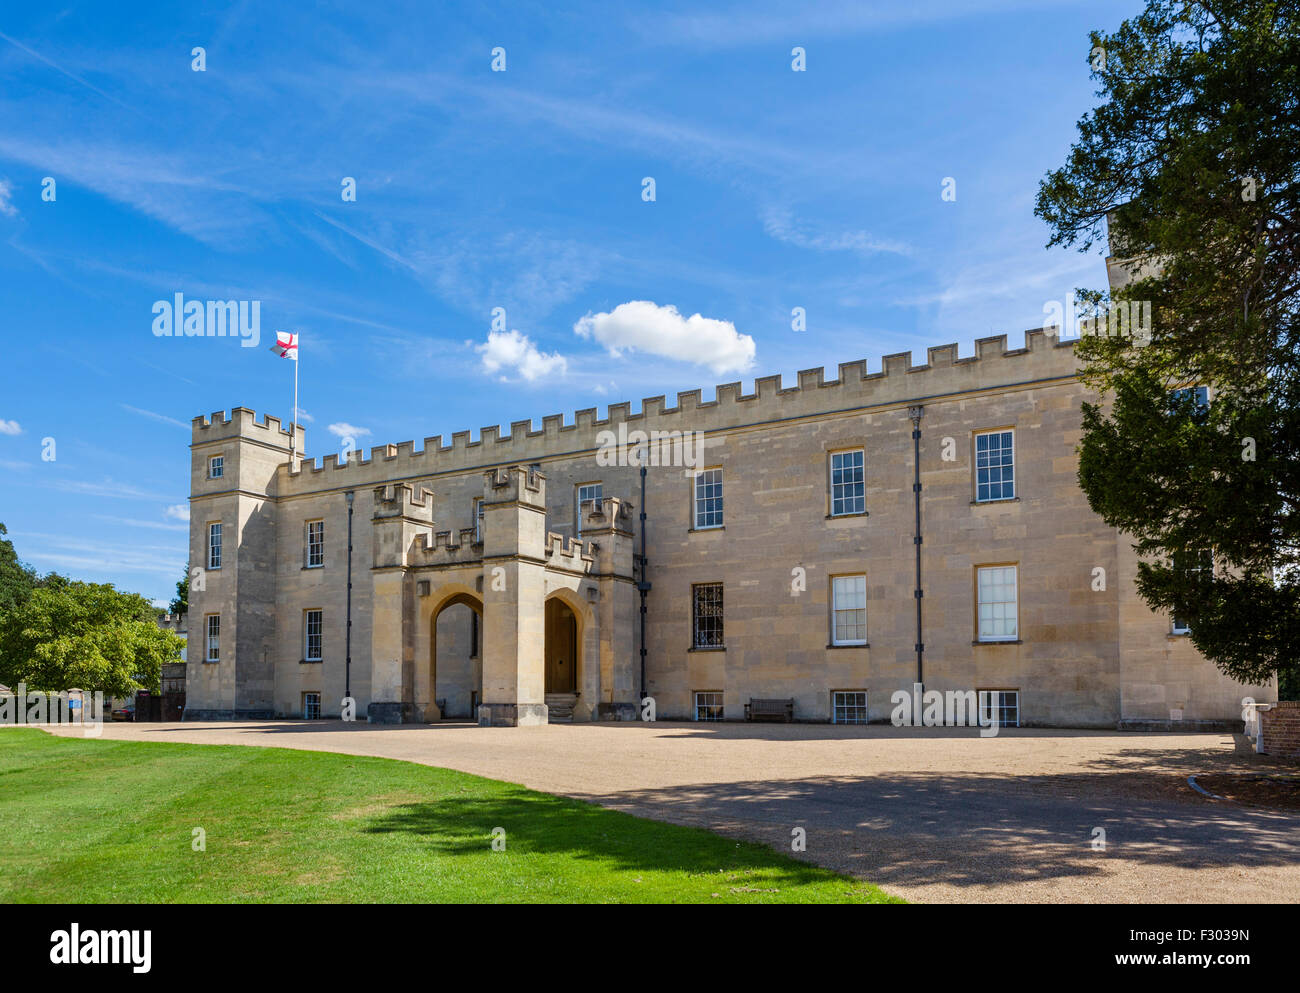 The front of Syon House, Syon Park, West London, England, UK - Stock Image